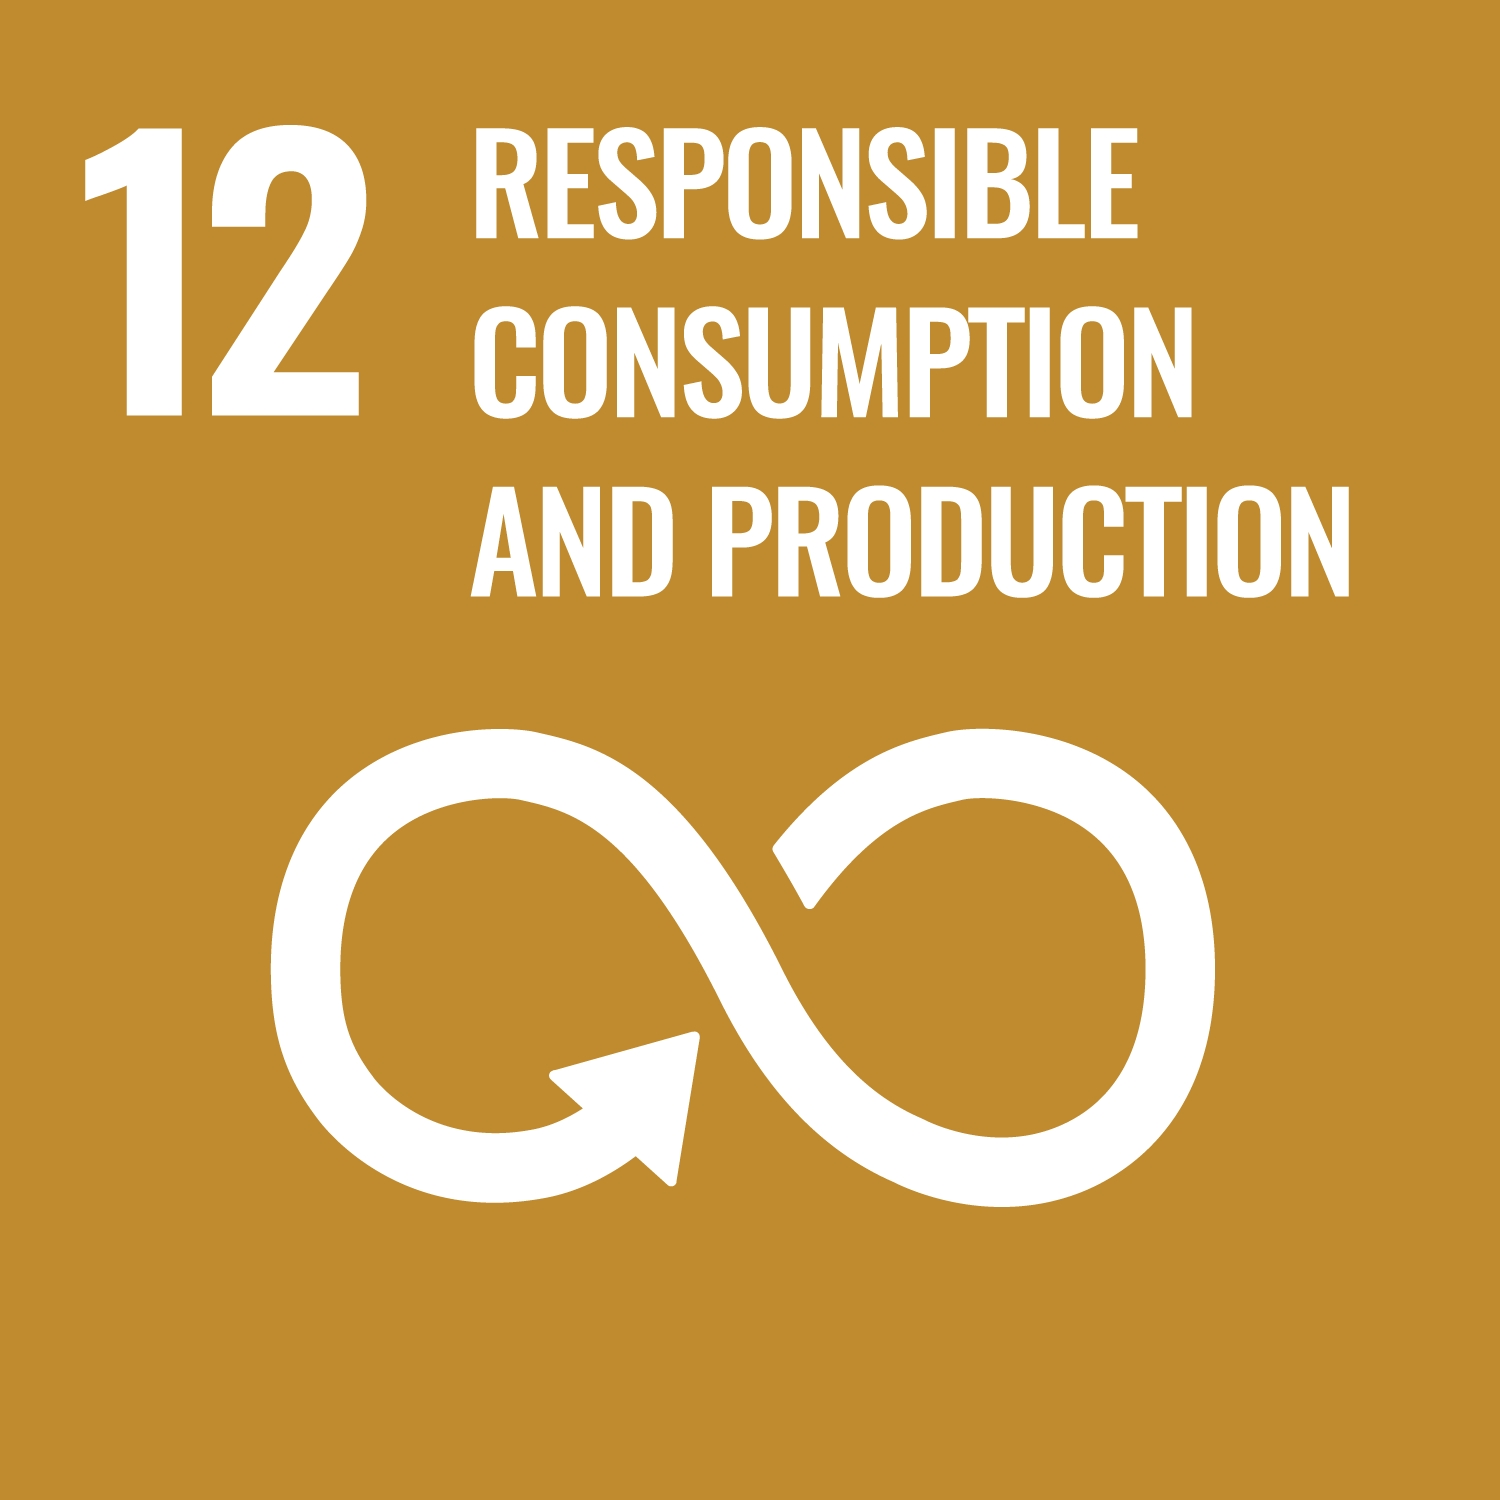 Ensure sustainable consumption and production pattern